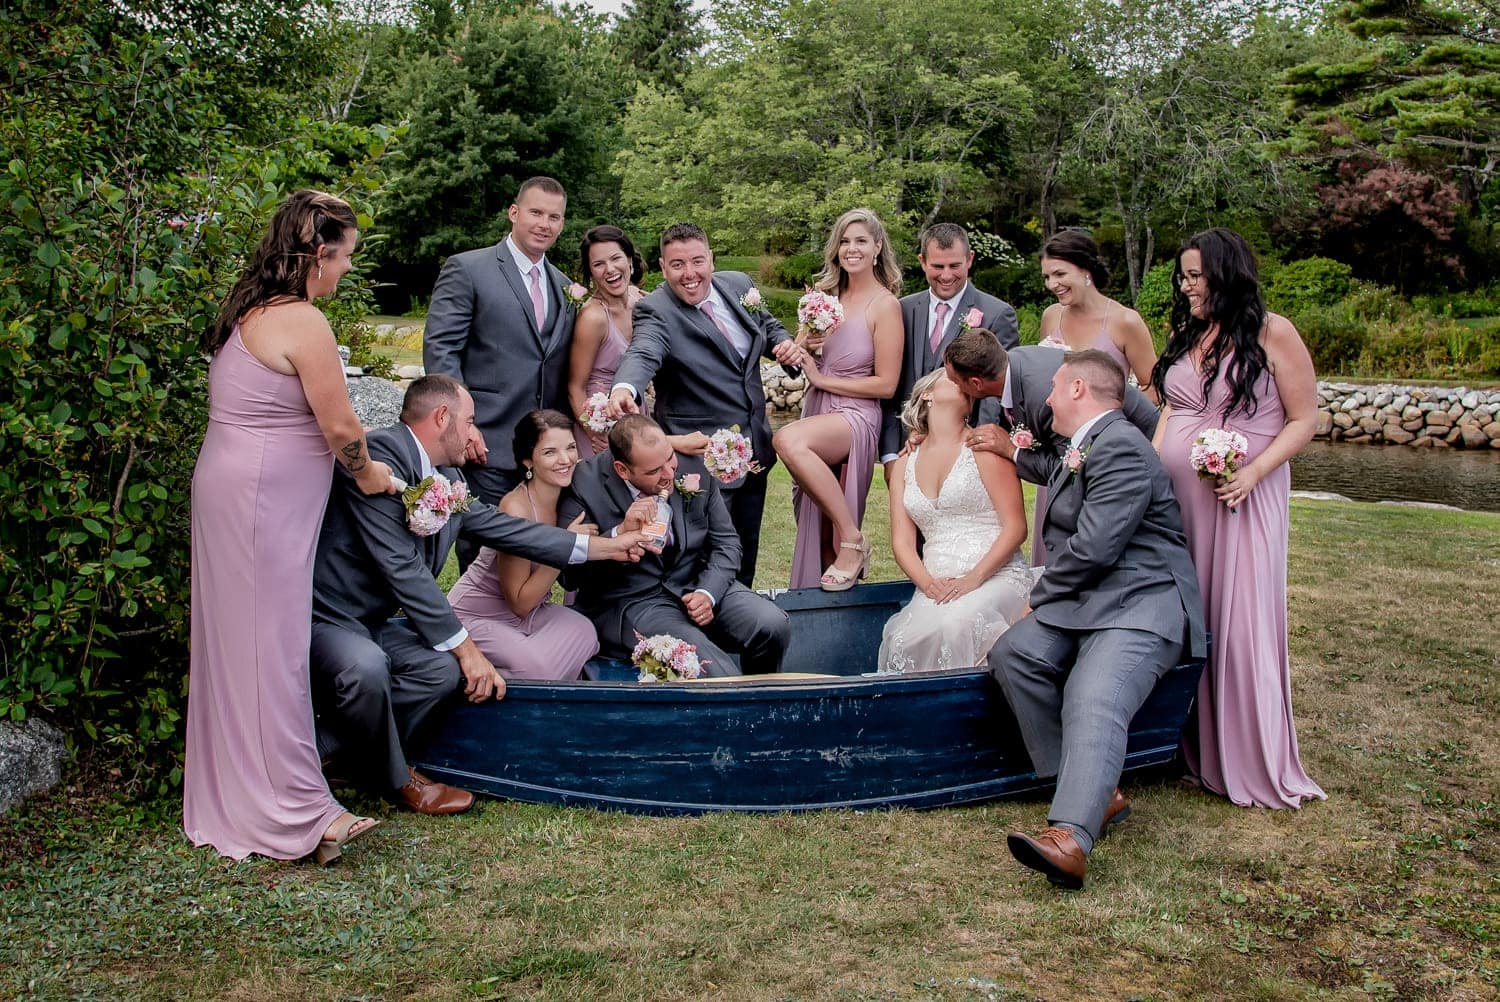 The bride and groom with the wedding party posing for wedding photos in a boat, bride kissing a groomsmen and groom drinking alcohol during a backyard wedding in Halifax.